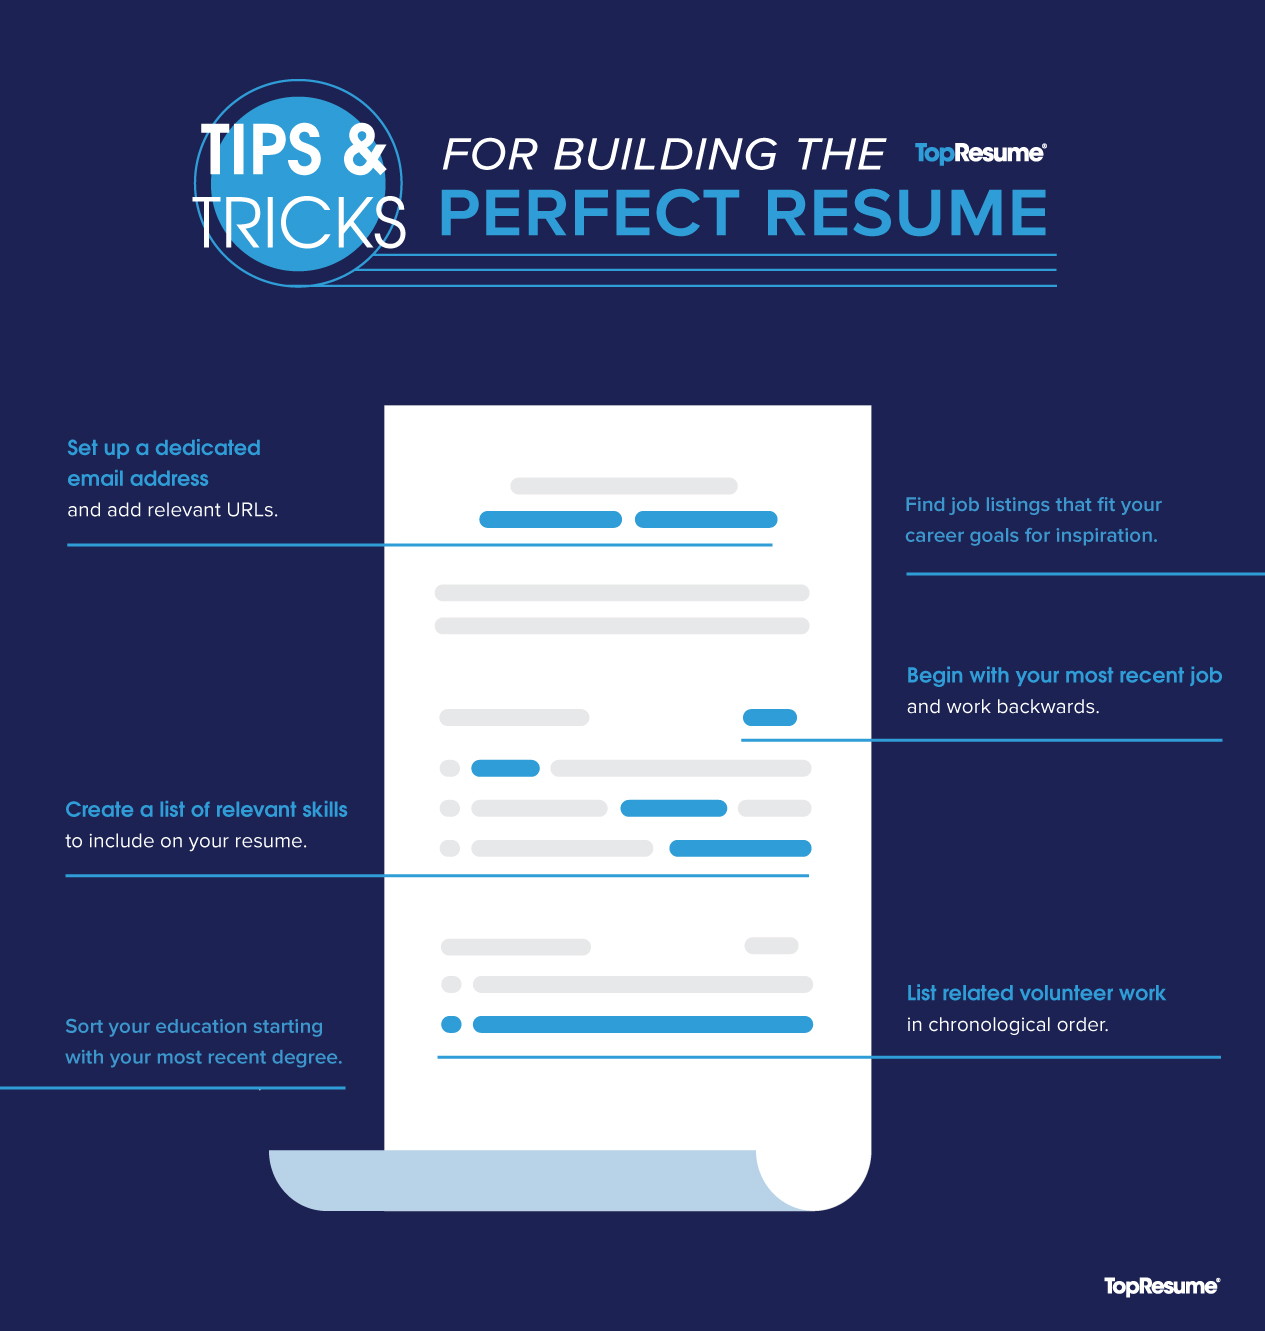 steps to writing the perfect resume topresume make better 11stepsinfographic objective Resume Make A Better Resume